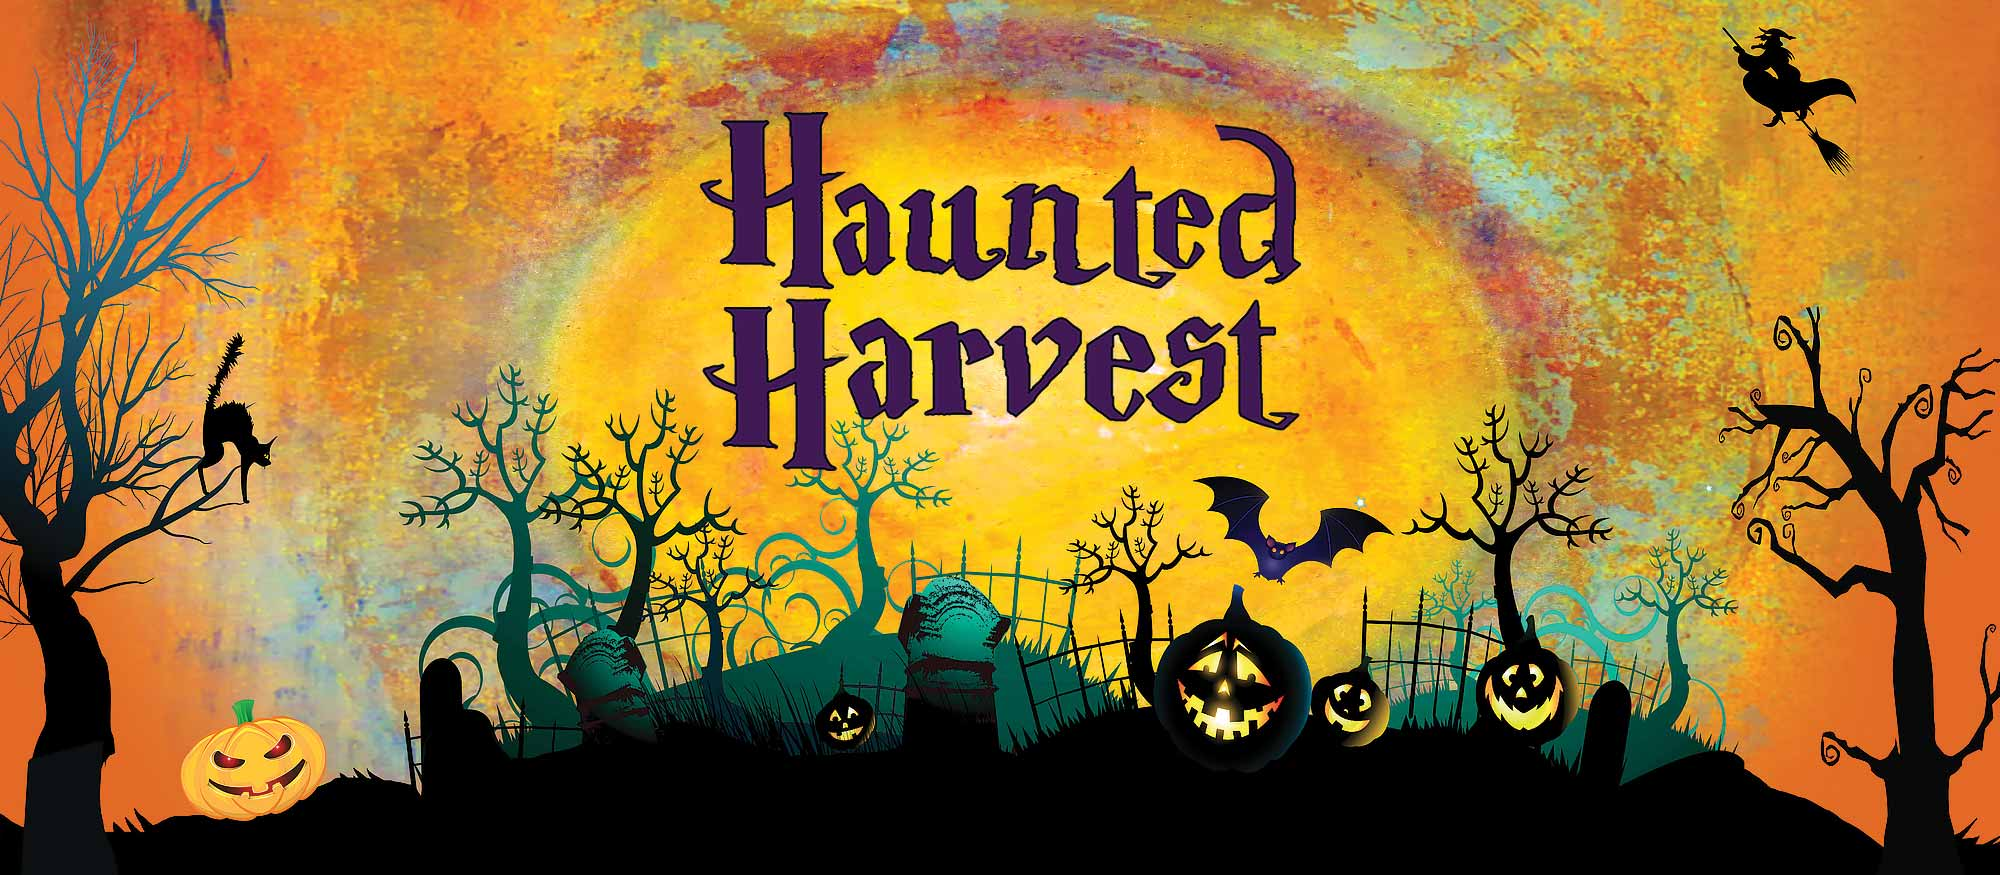 Artwork for Haunted Harvest at the Las Vegas Springs Preserve